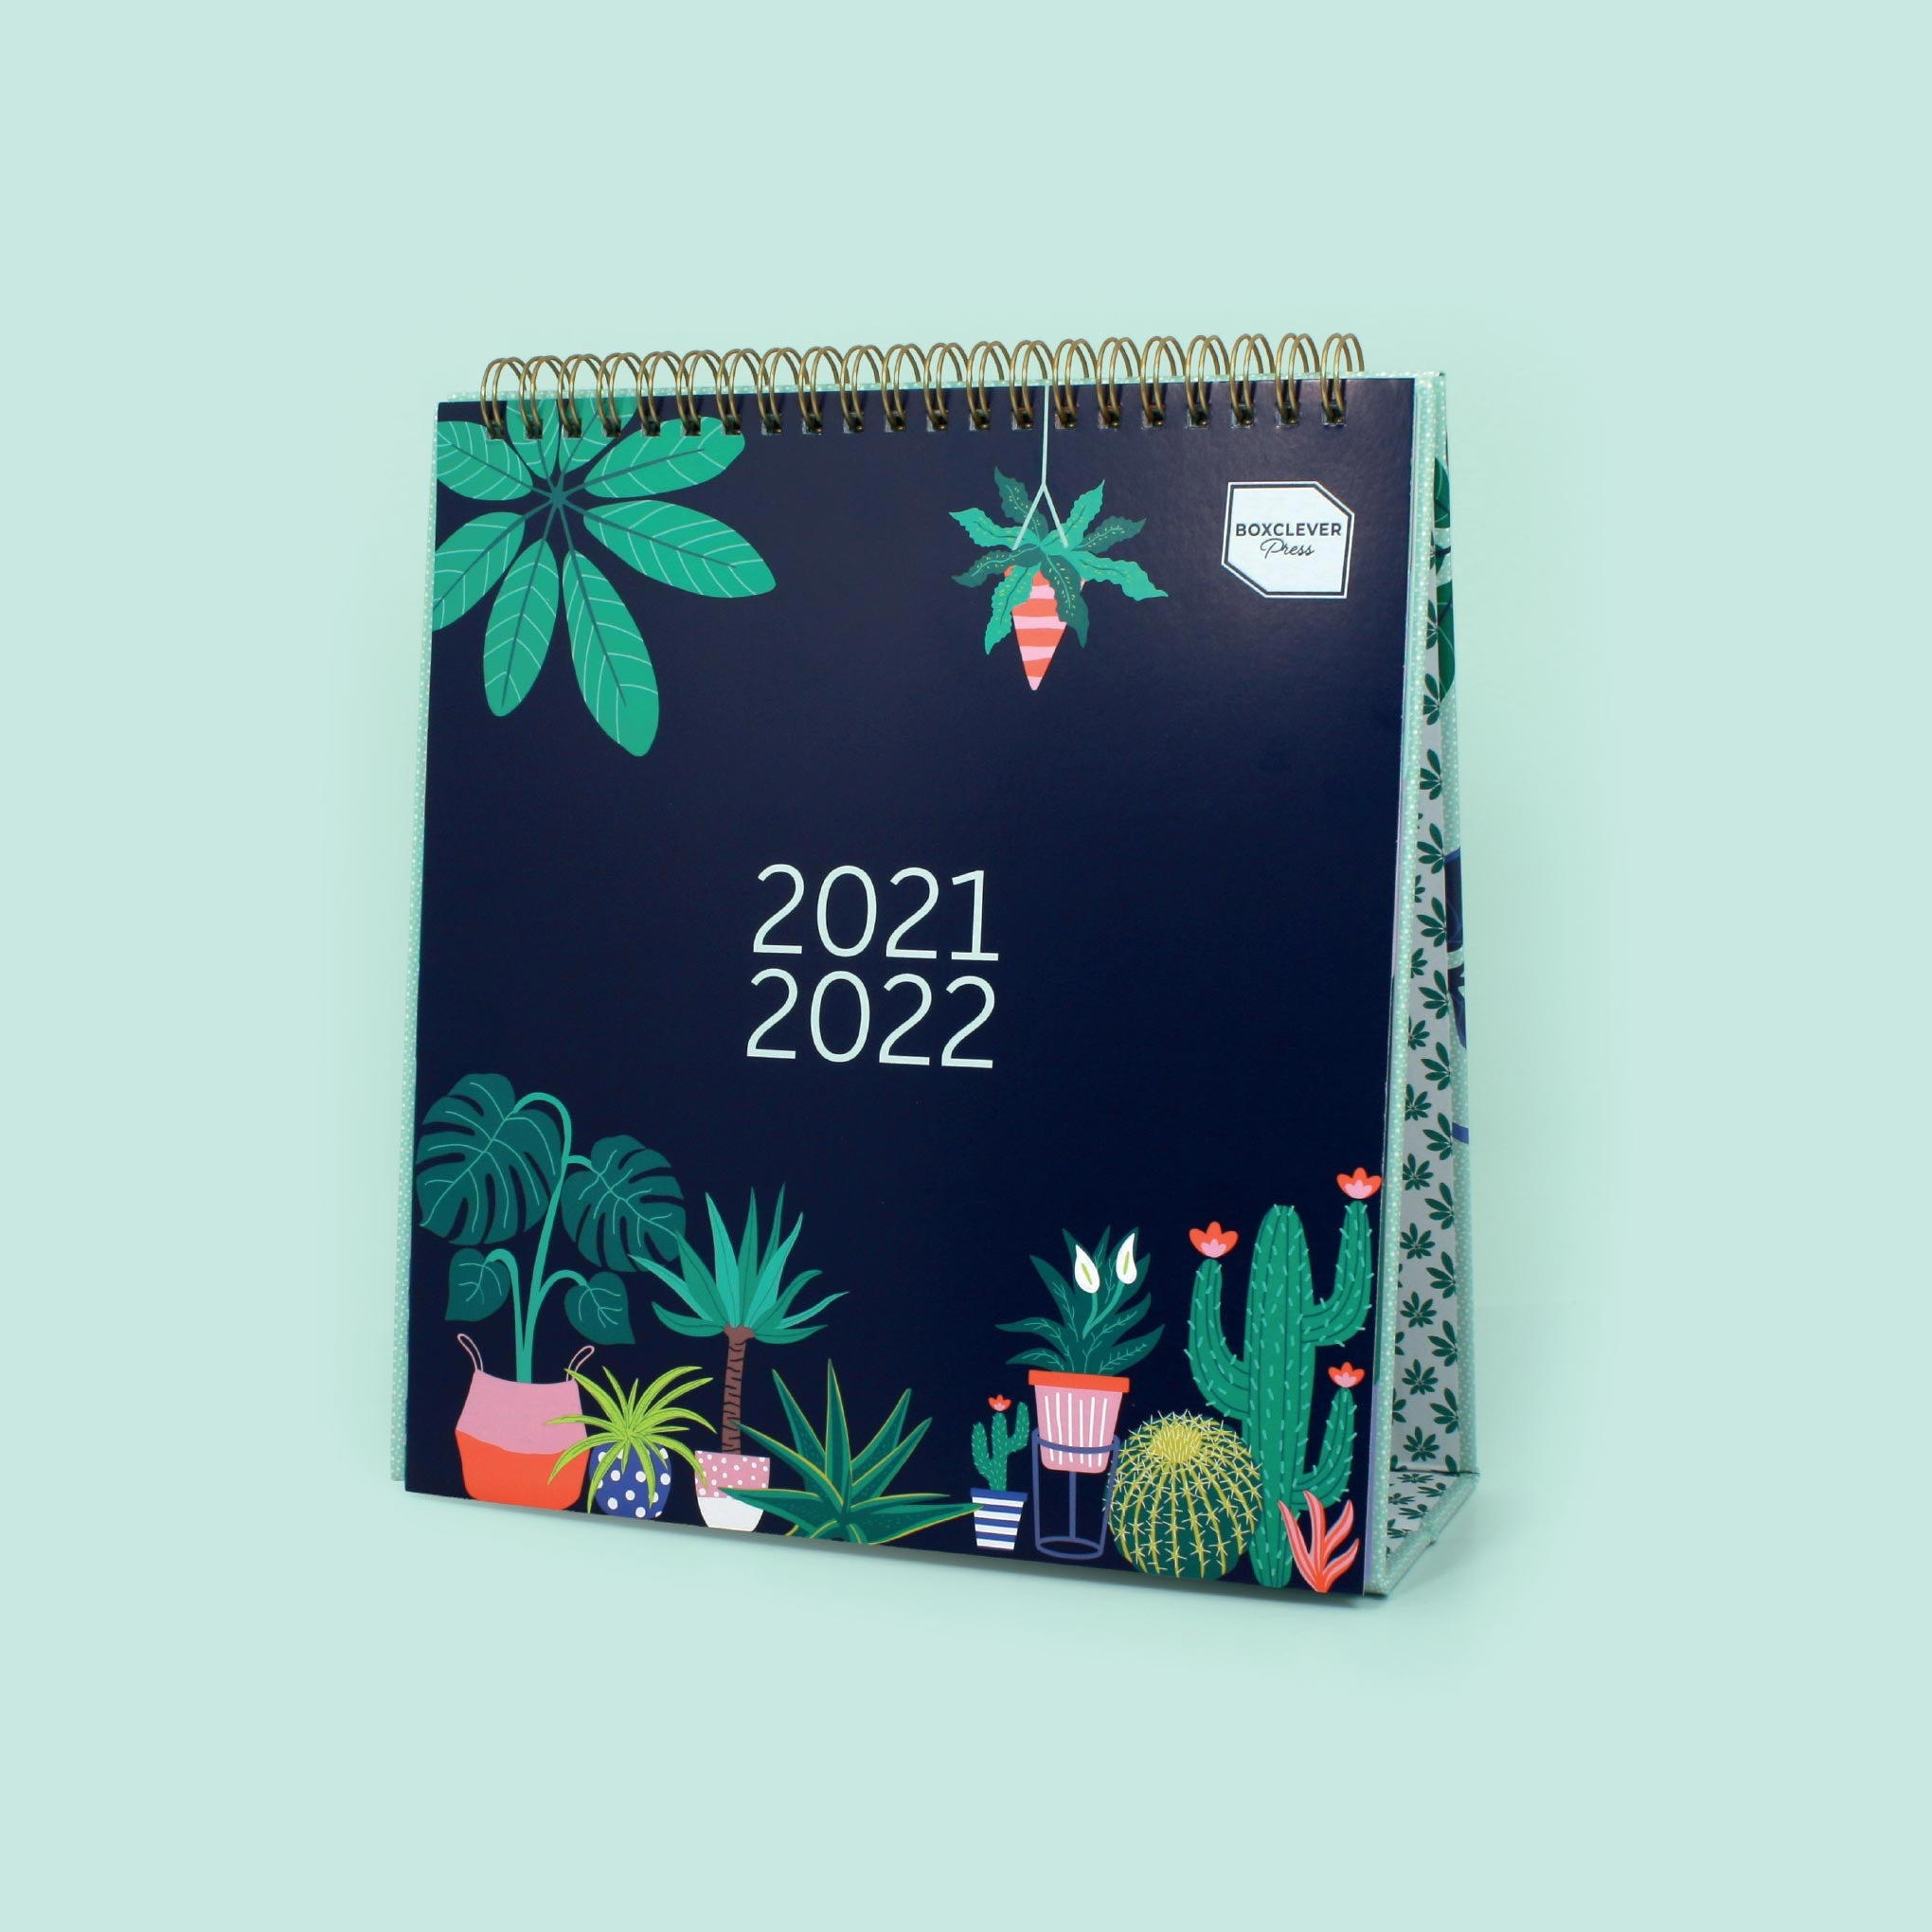 An image of 2021 - 2022 Simply Study Desk Calendar I month-to-view I Boxclever Press